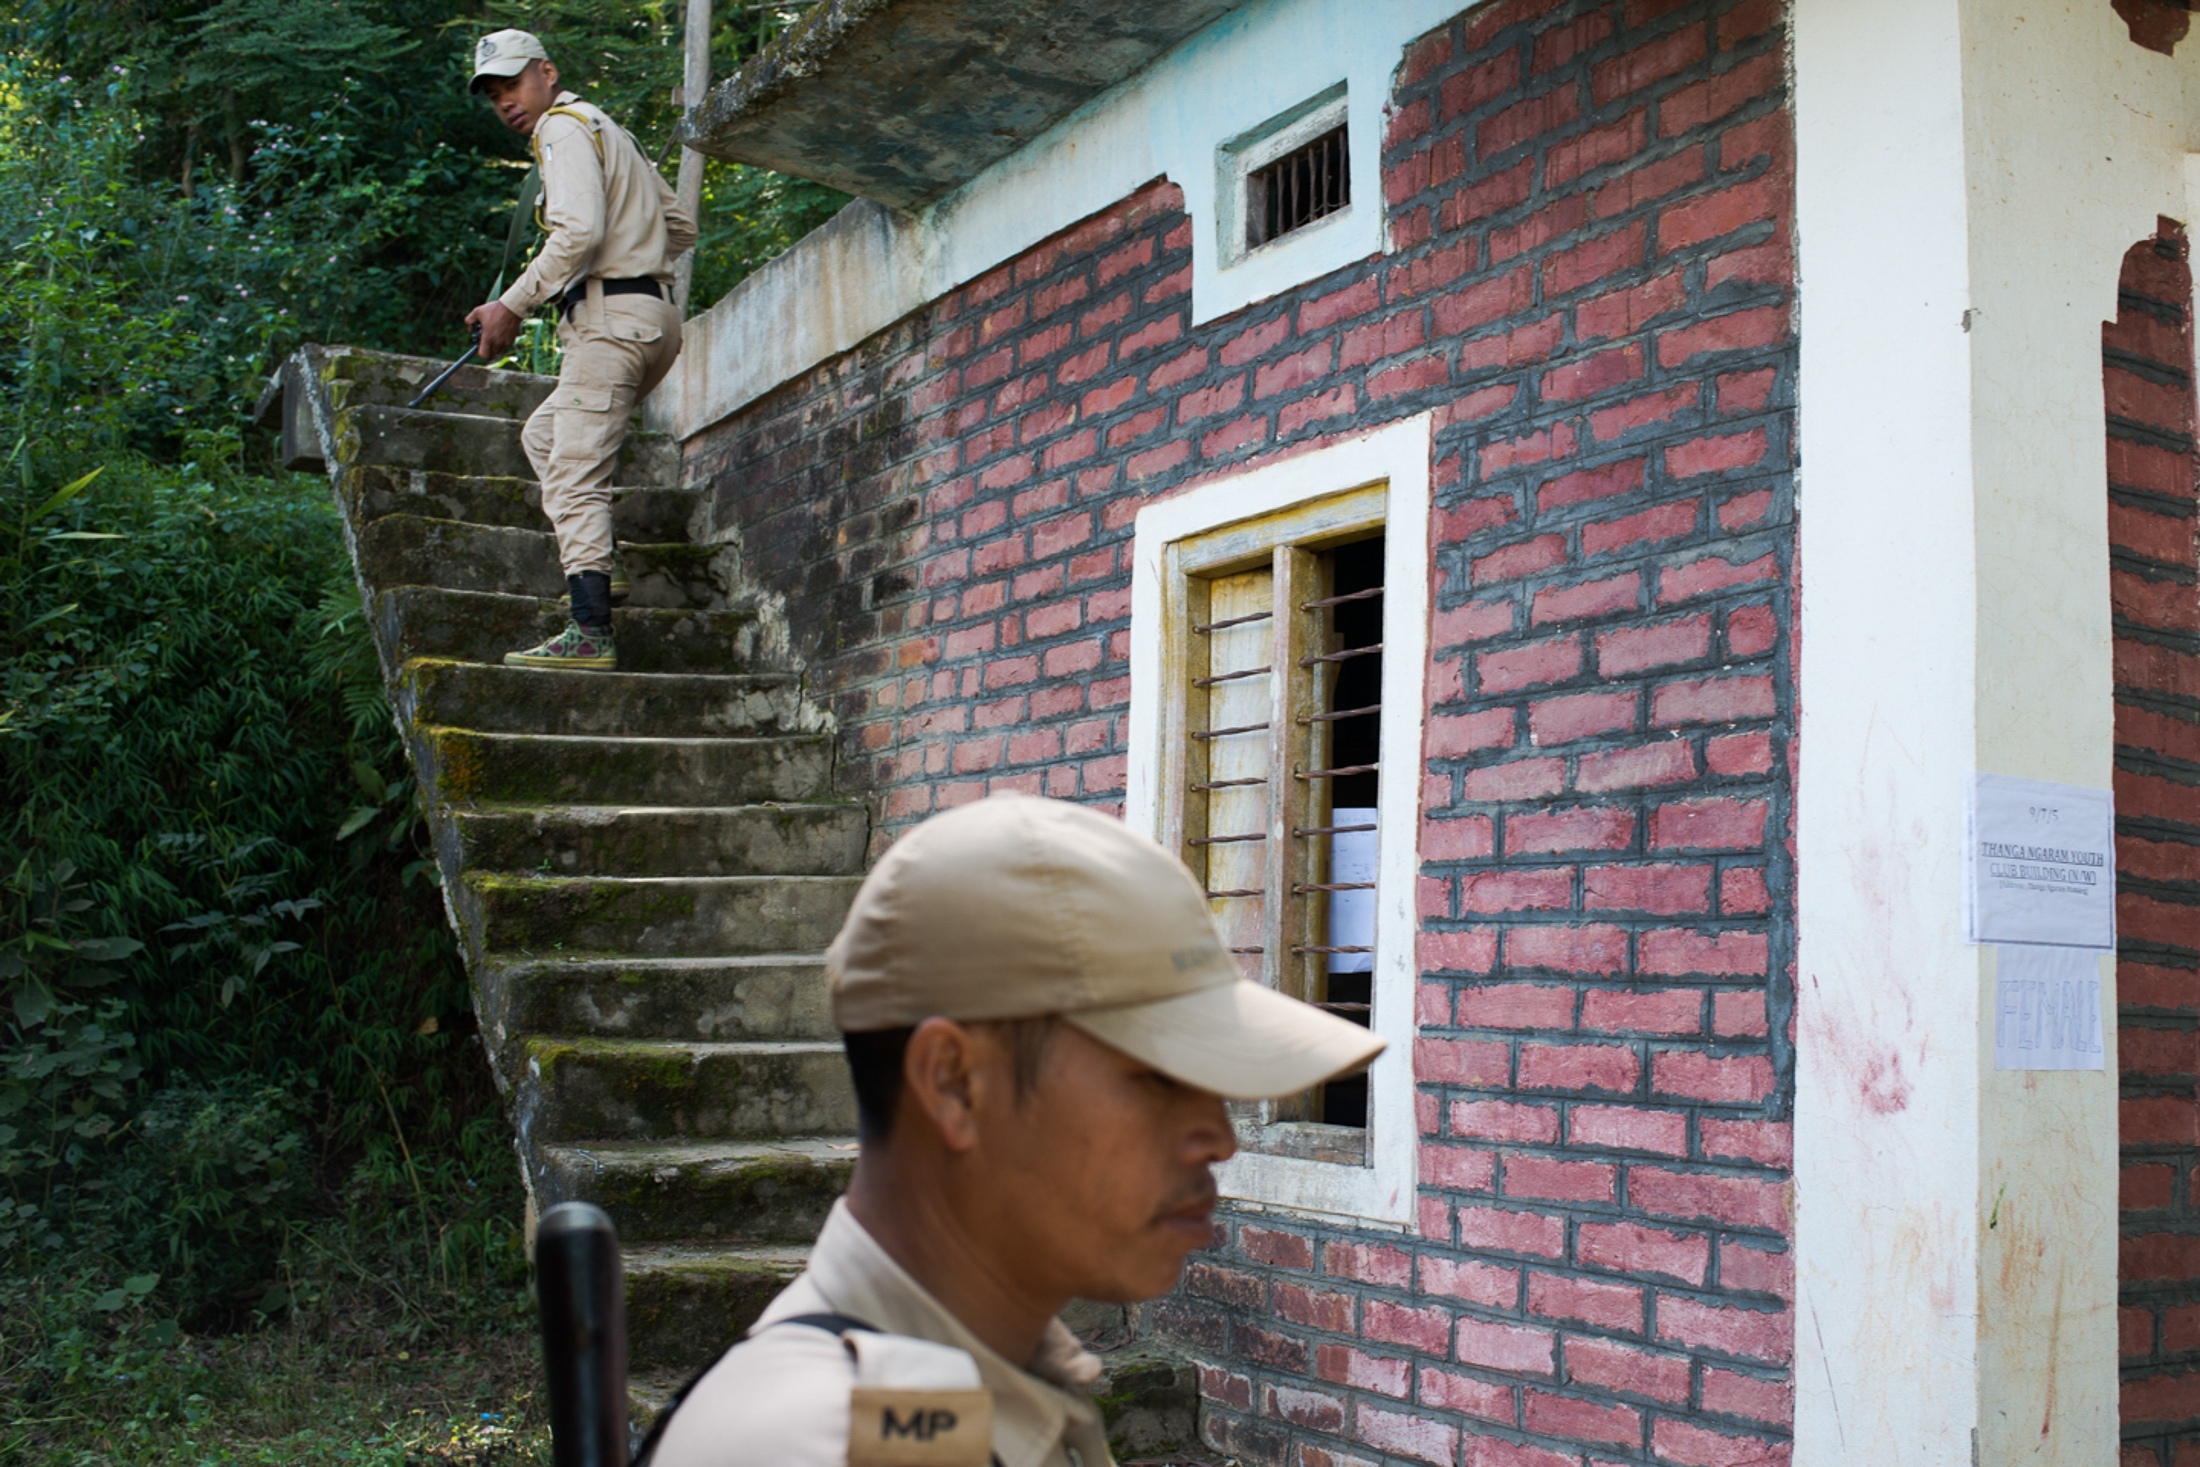 Security forces patrol a school at a school in Thanga village prior to polls. Areas surrounding Loktak have been used as hiding grounds by insurgent groups demanding a separate nation which has intensified the militarization of Loktak Lake. The Insurgency in Manipu r is an ongoing armed conflict between India and a number of separatist rebel groups in India's northeastern states.